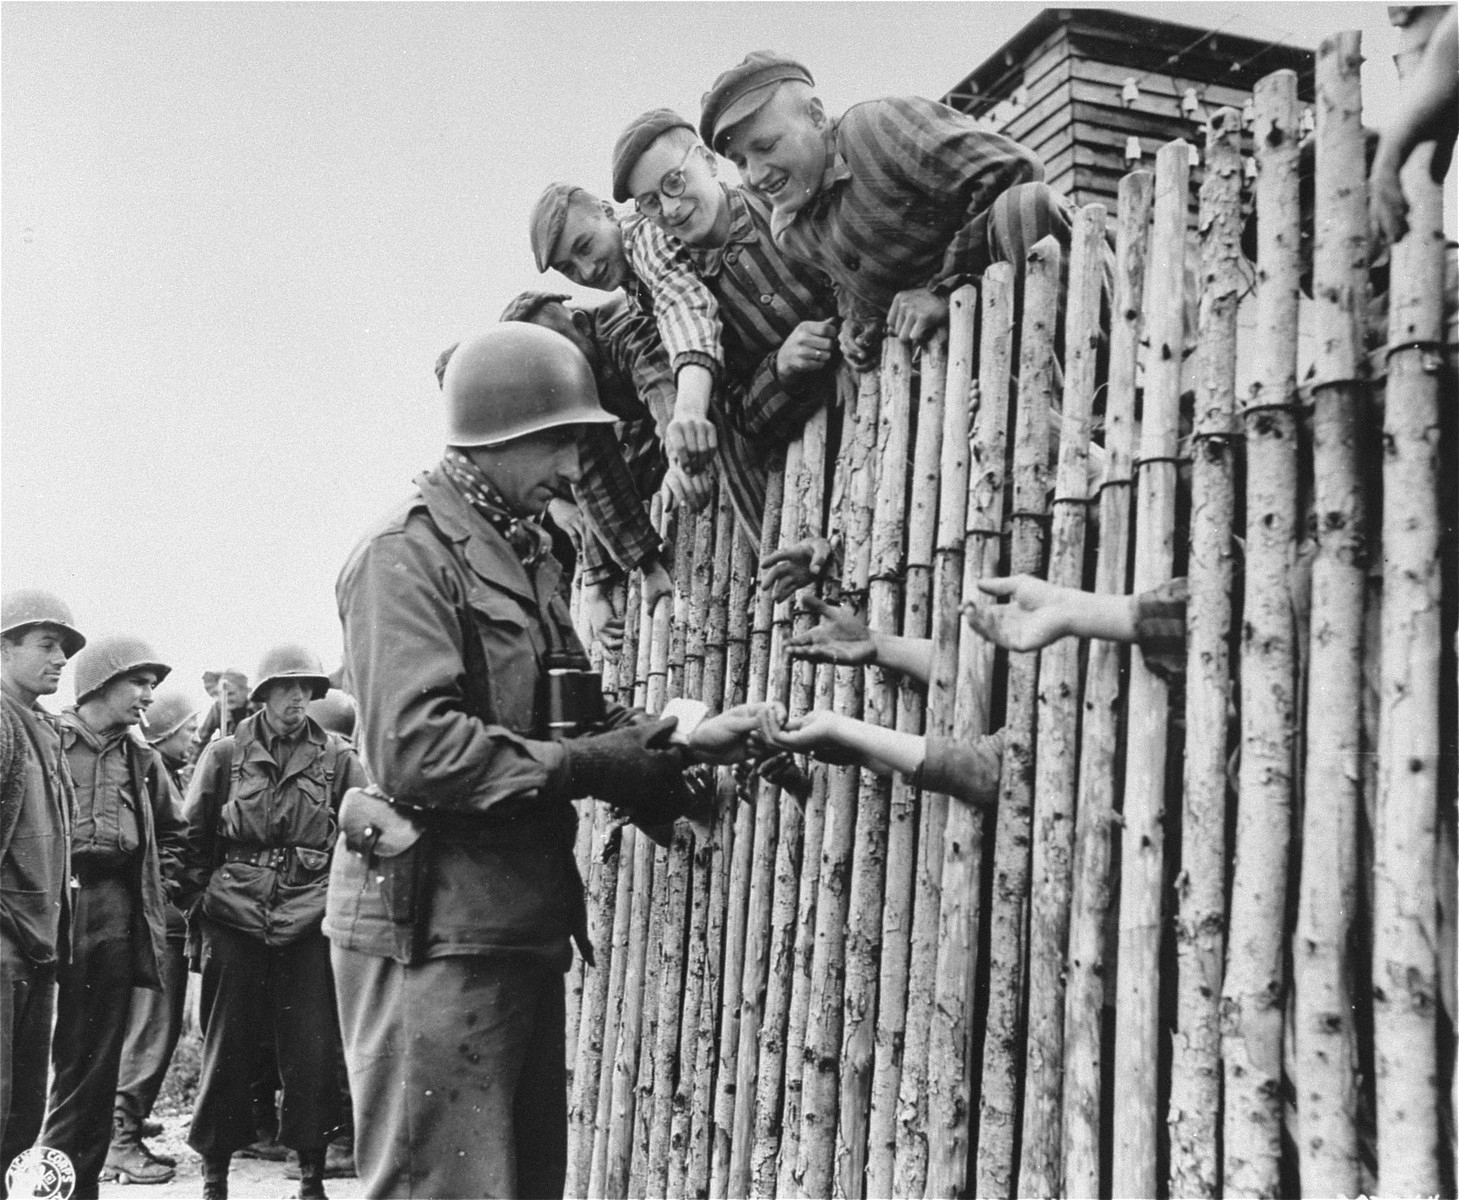 "U.S. Army Corporal Larry Matinsk puts cigarettes into the extended hands of newly liberated prisoners behind a stockade in the Allach concentration camp.  Also pictured are U.S. Army soldiers Arthur Toratti and George Babel (second and third from the left).  Original caption reads, ""Cpl Larry Mutinsk, Philadelphia, PA., hands out his last pack of cigarettes to the eager reaching hands of the prisoners within the wire stockade of the prison camp at Dachau."""